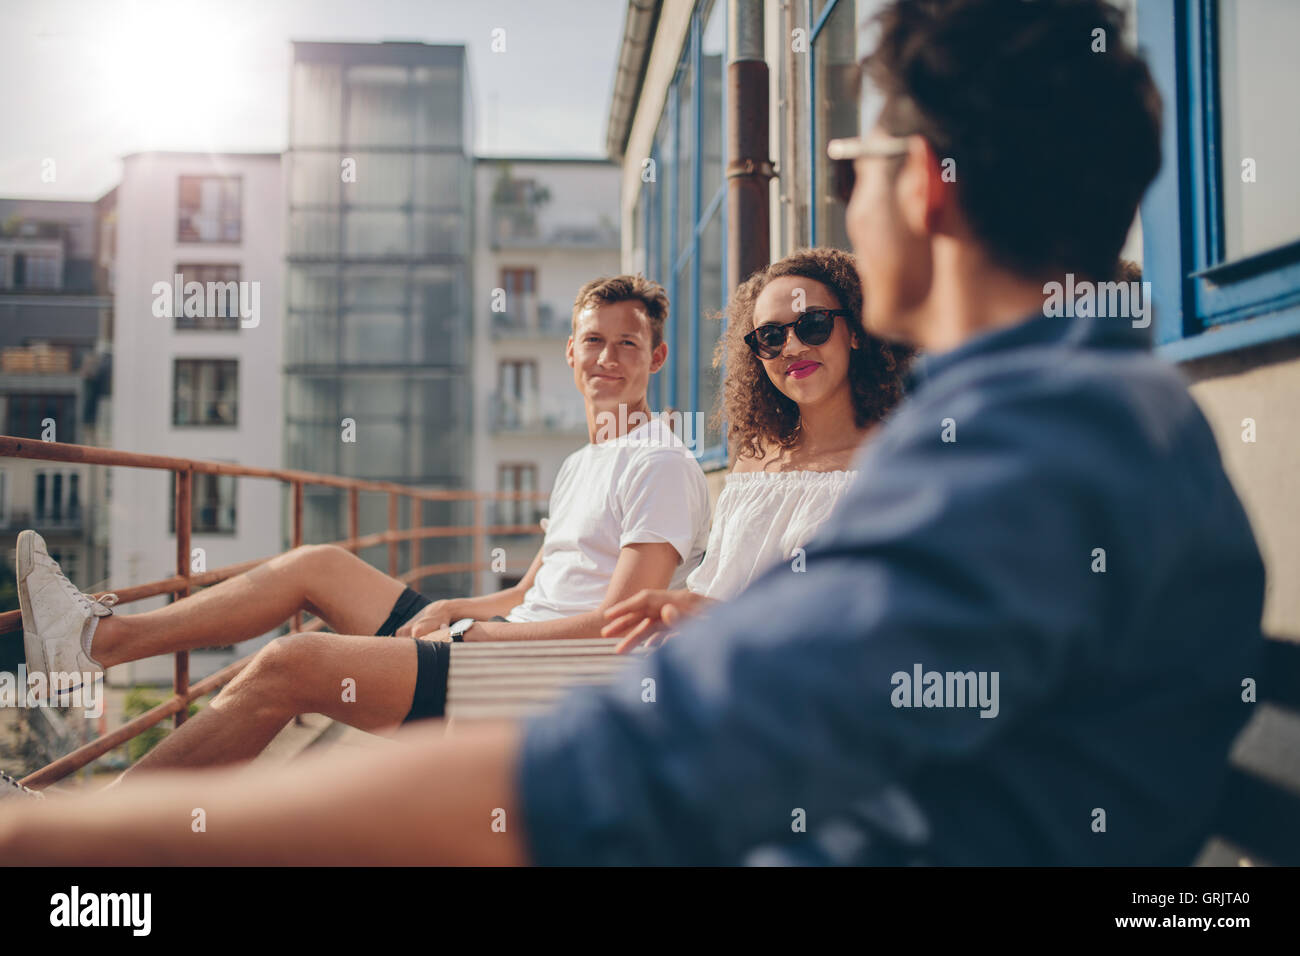 Shot of young woman sitting with her friends at outdoor cafe. Group of young people relaxing in a balcony. - Stock Image